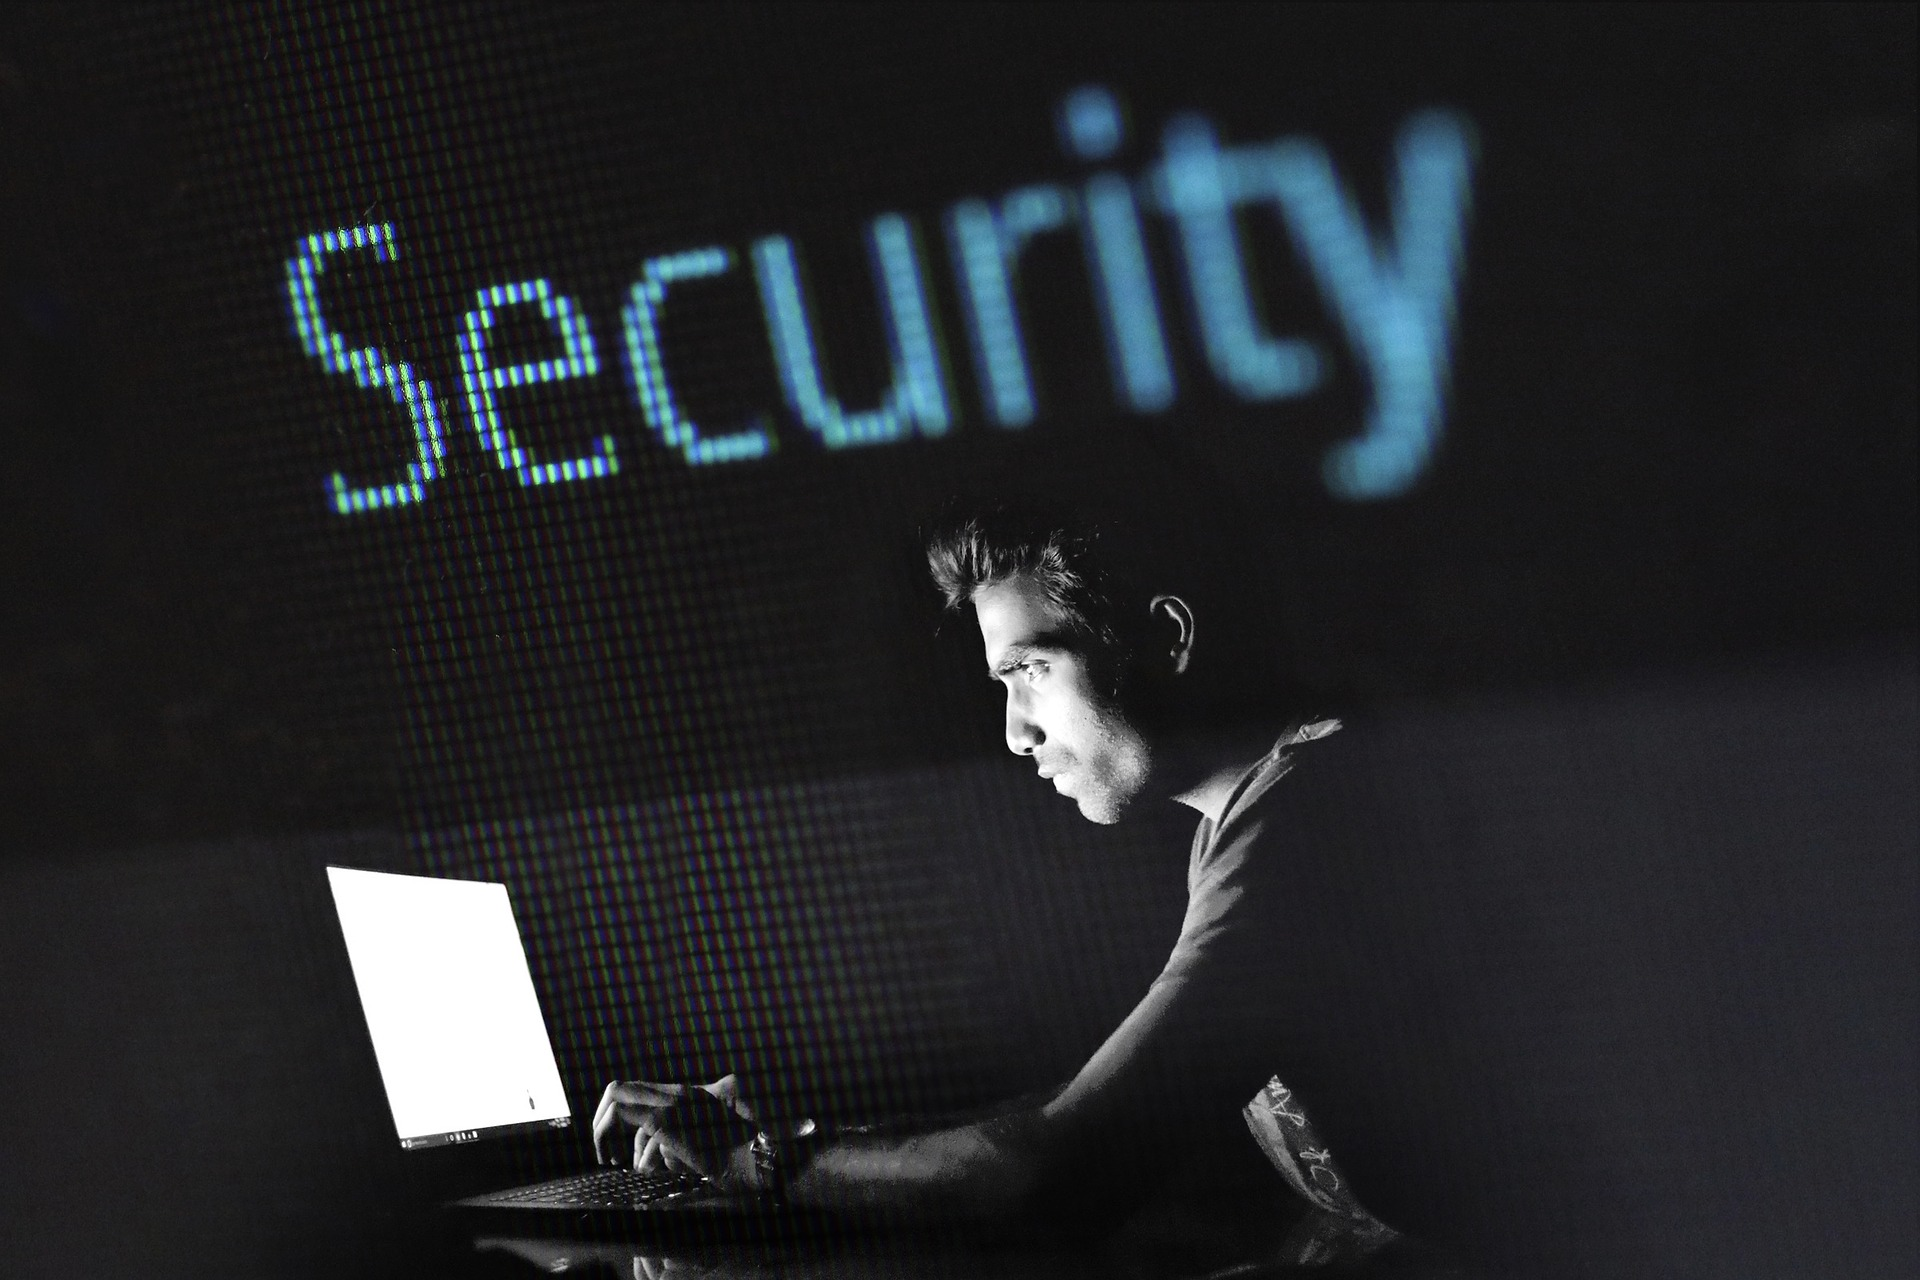 Israel's new web hosting rankings could boost online security worldwide